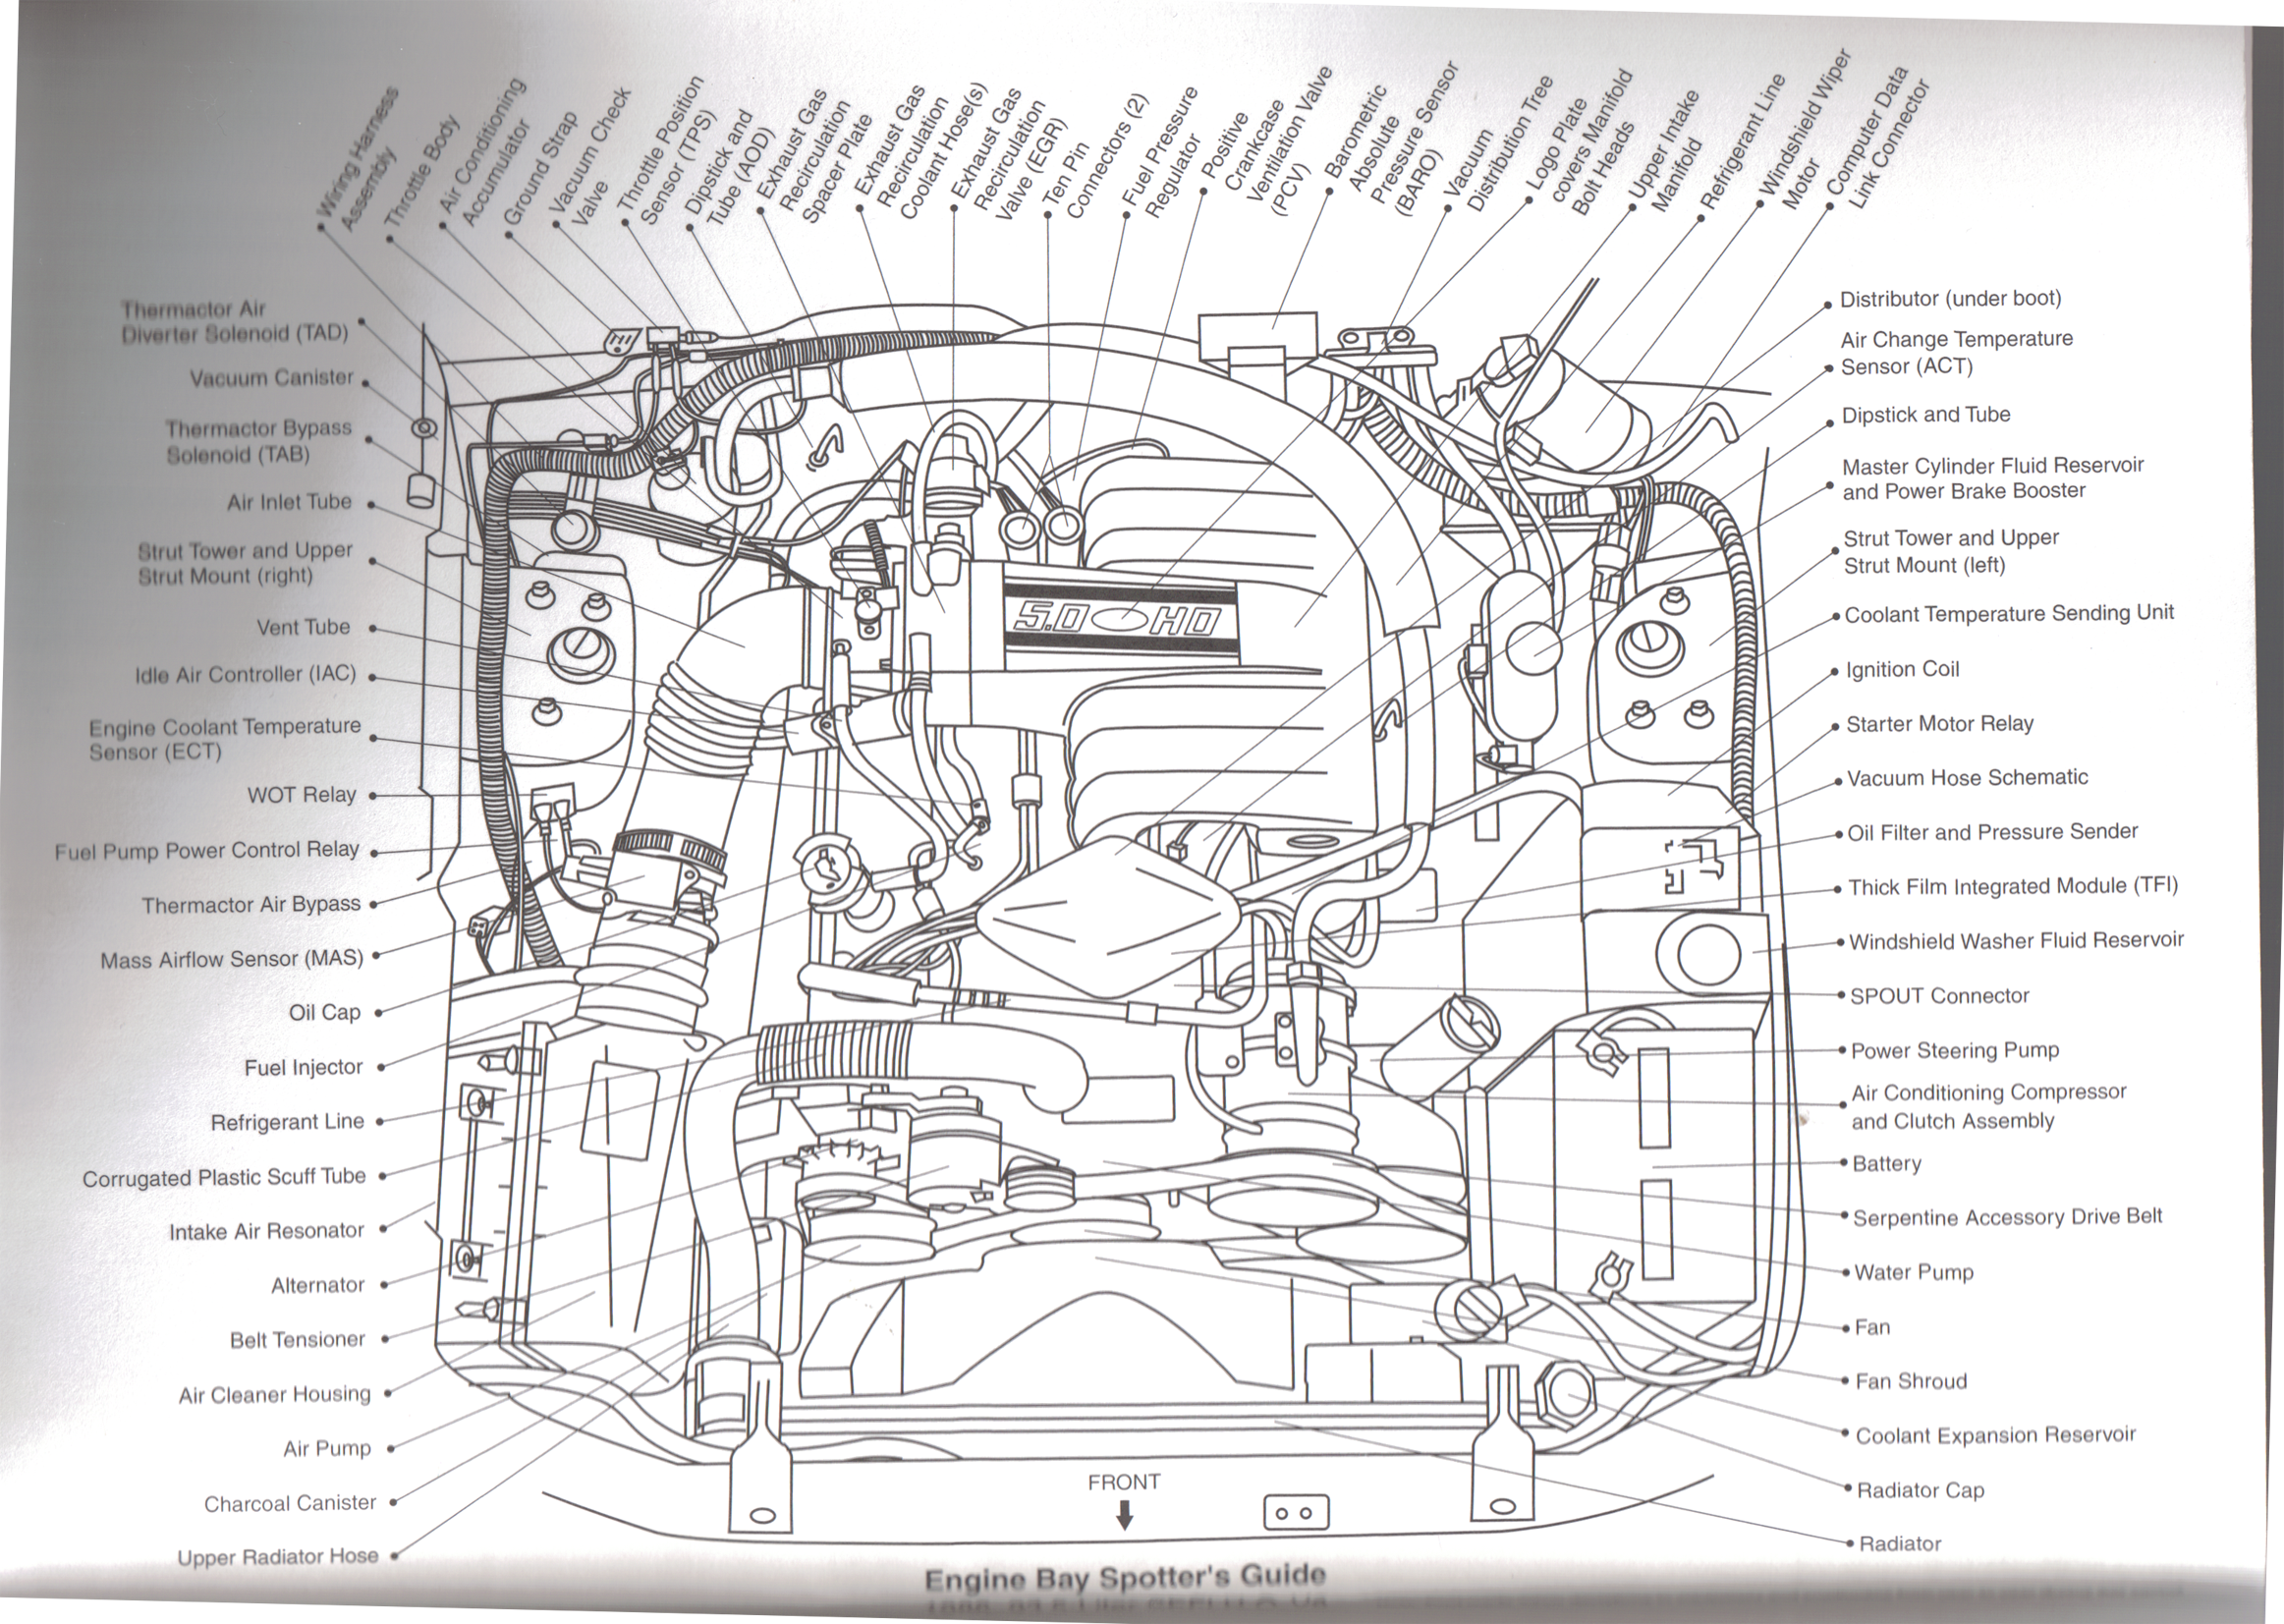 1987 1993 foxbody 5.0 sefi v8 engine part diagram everything you need to know about 1979 1993 foxbody mustangs 1989 F250 Wiring Diagram at reclaimingppi.co